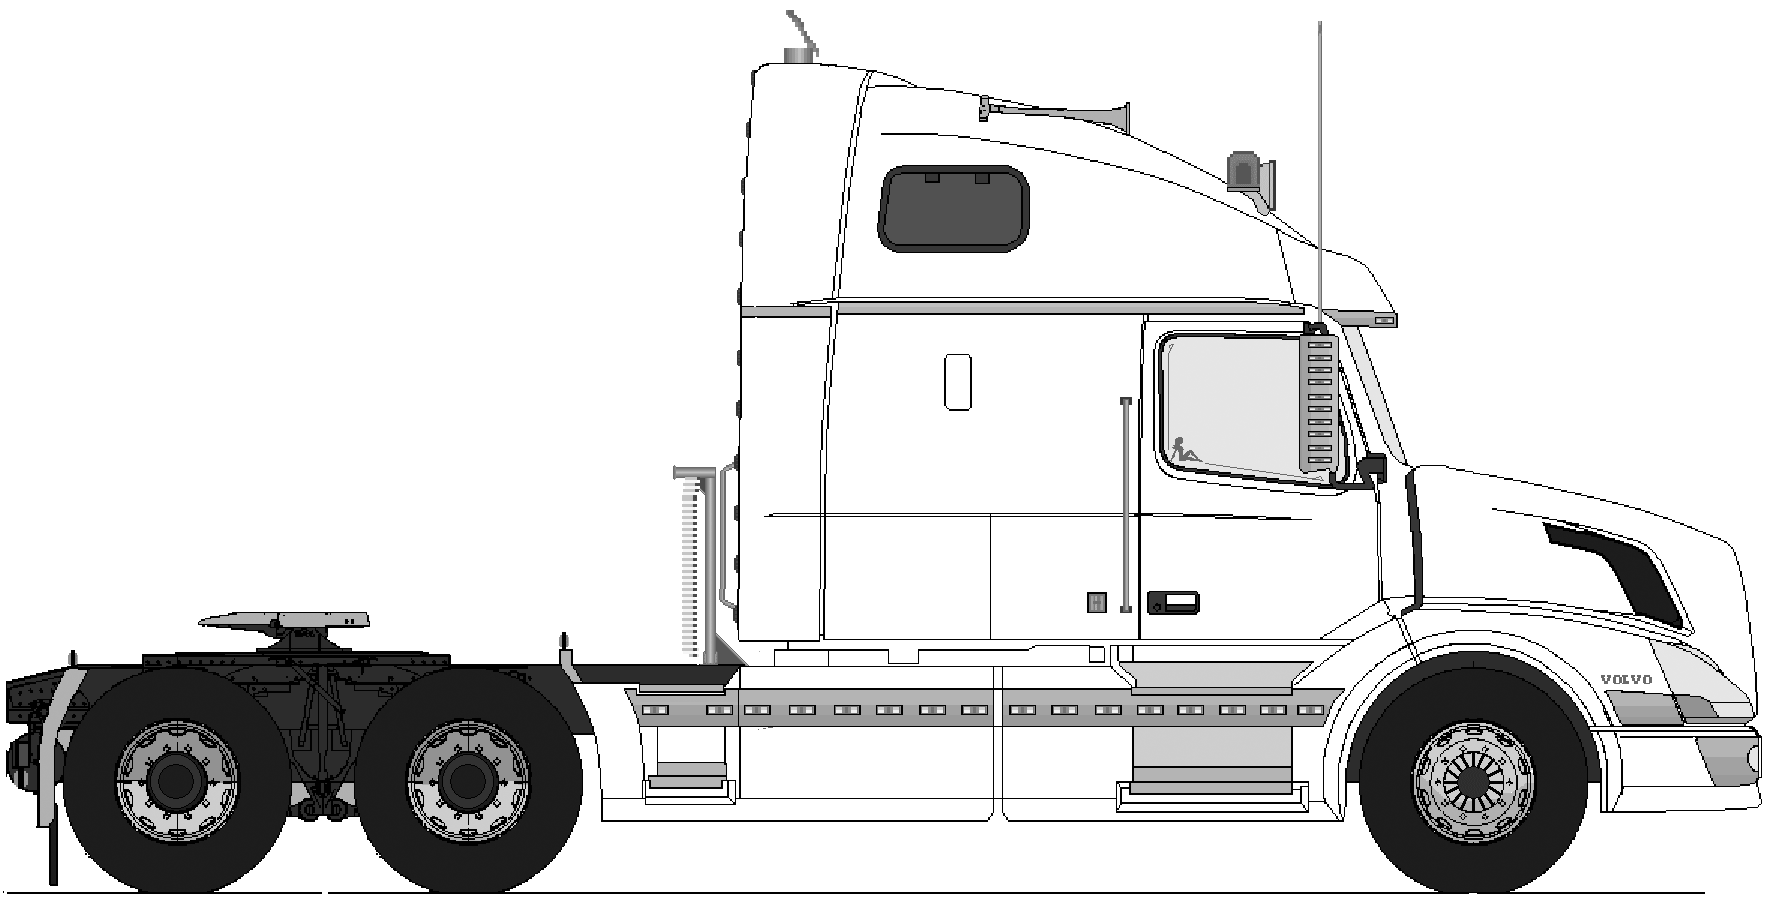 Volvo VN770 6x4 Heavy Truck blueprints free - Outlines